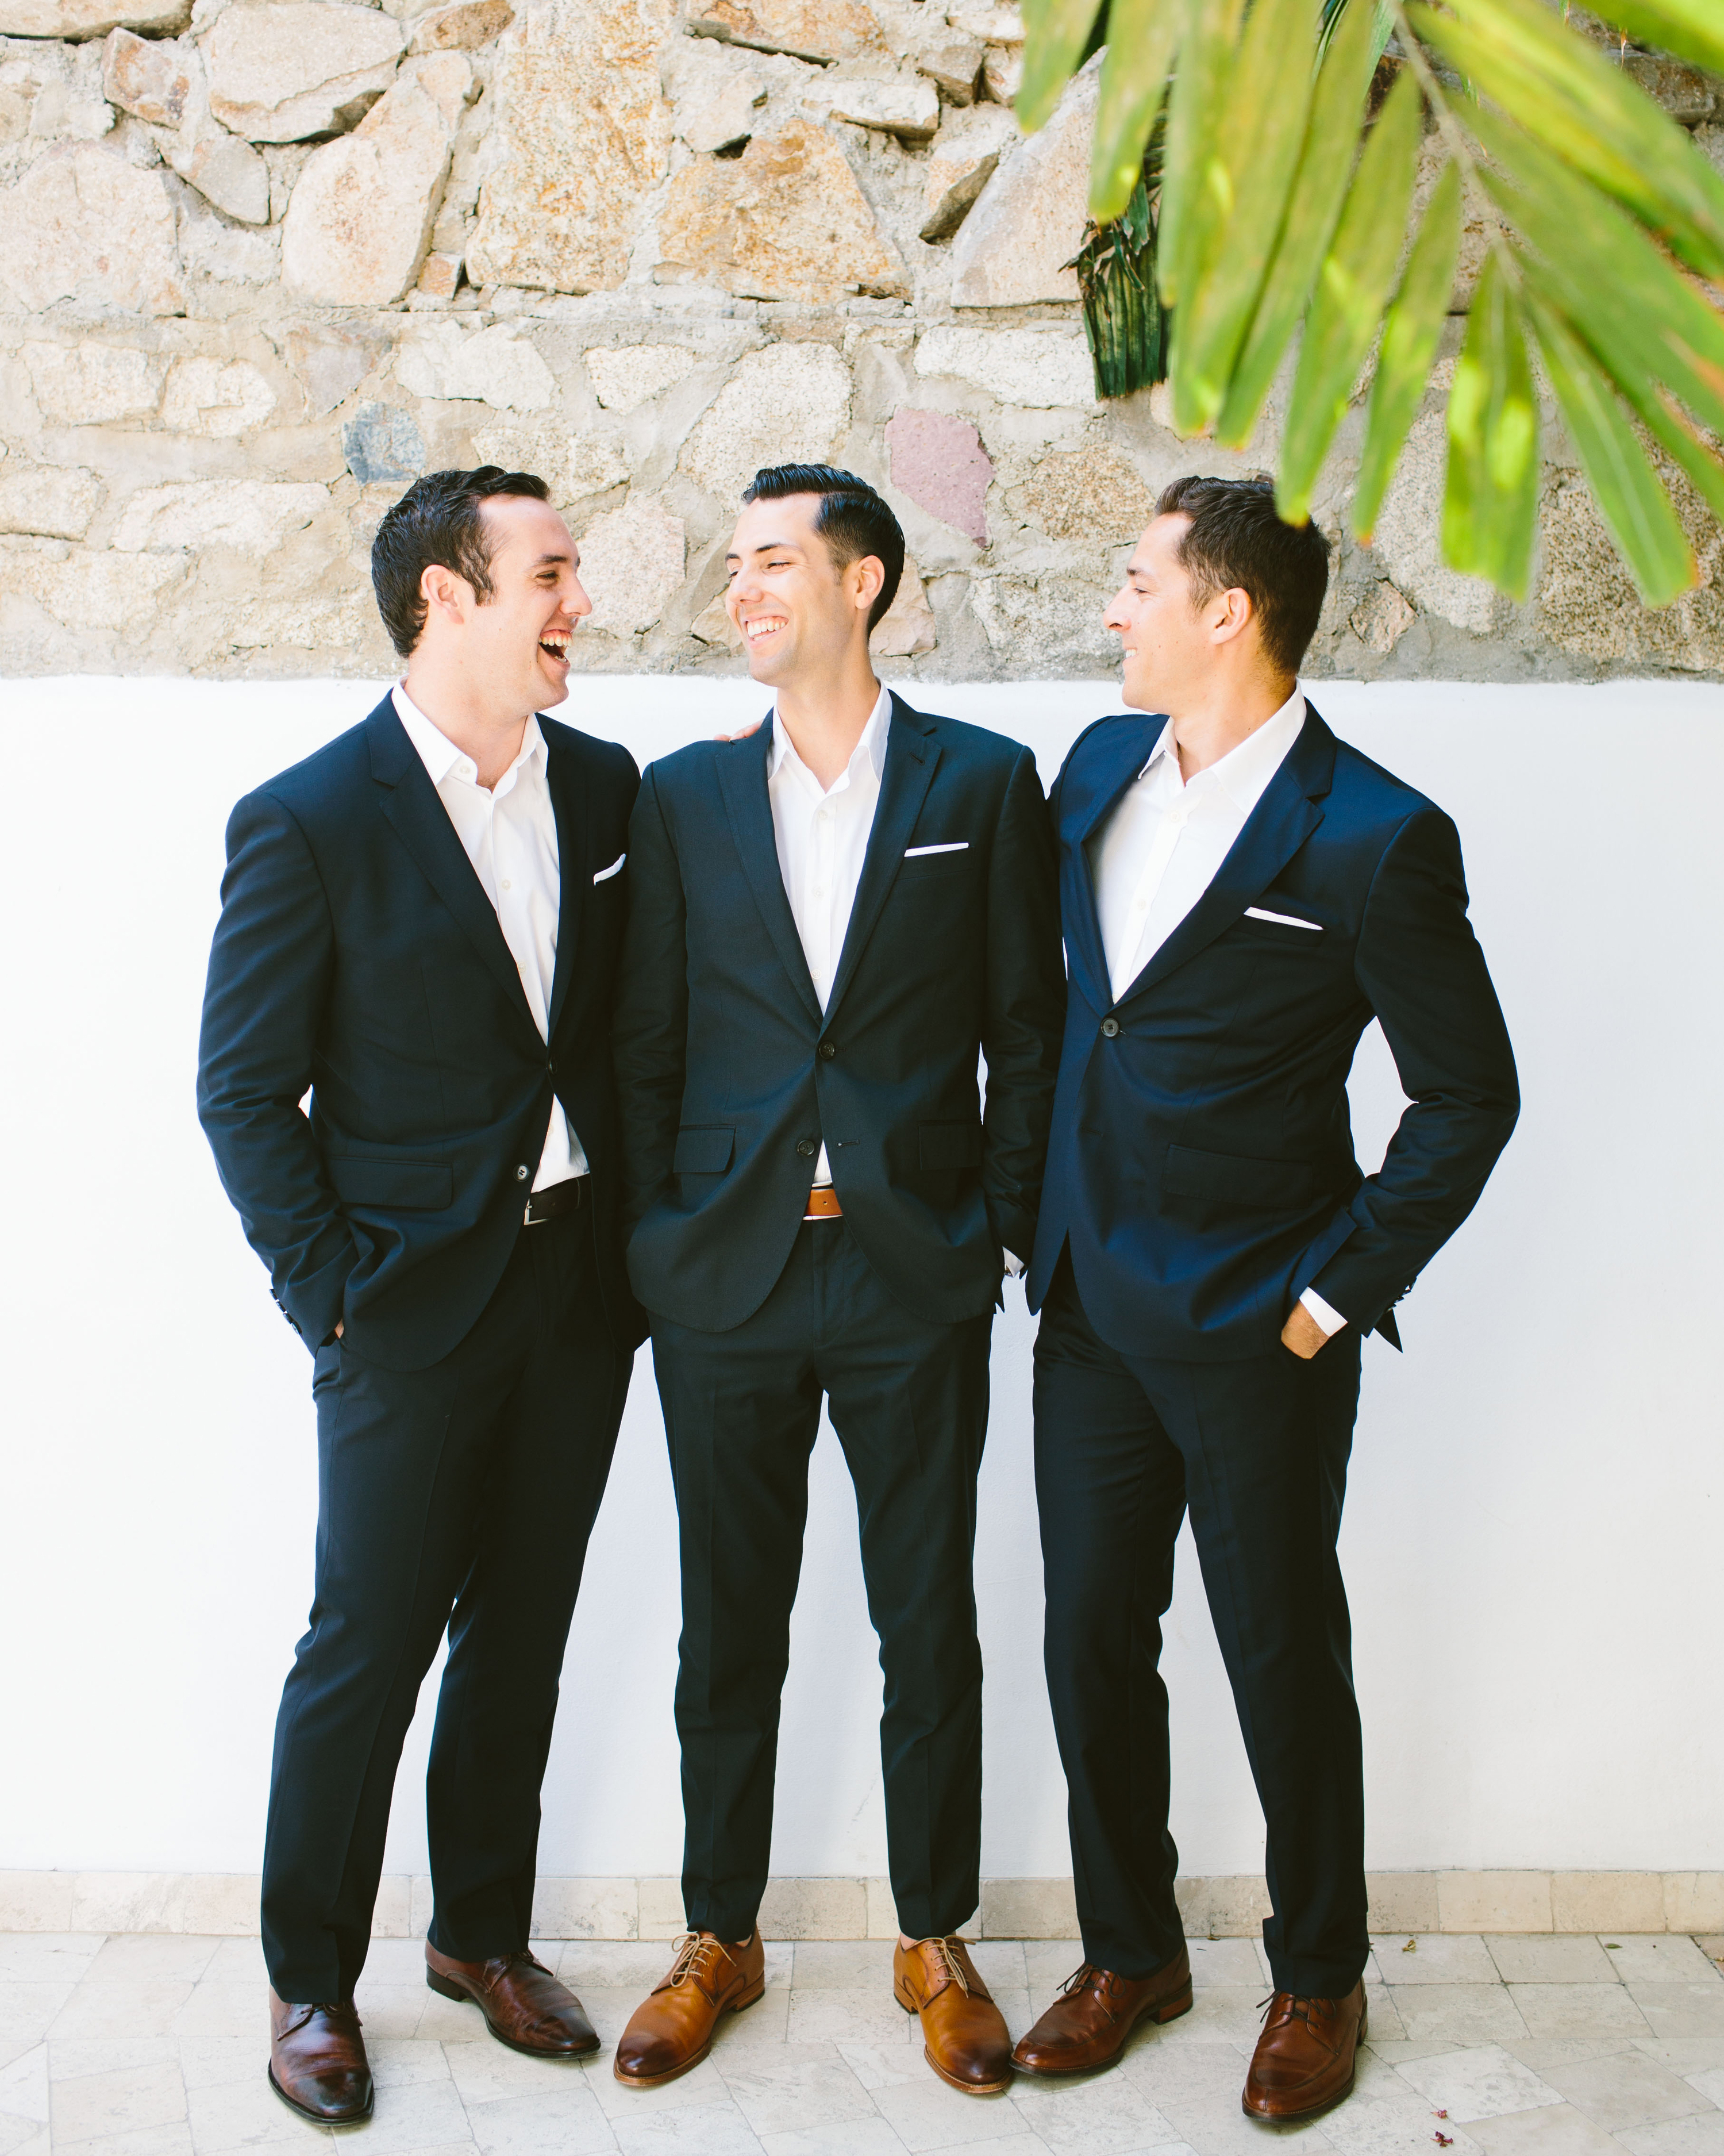 Can the Groom Have Two Best Men?